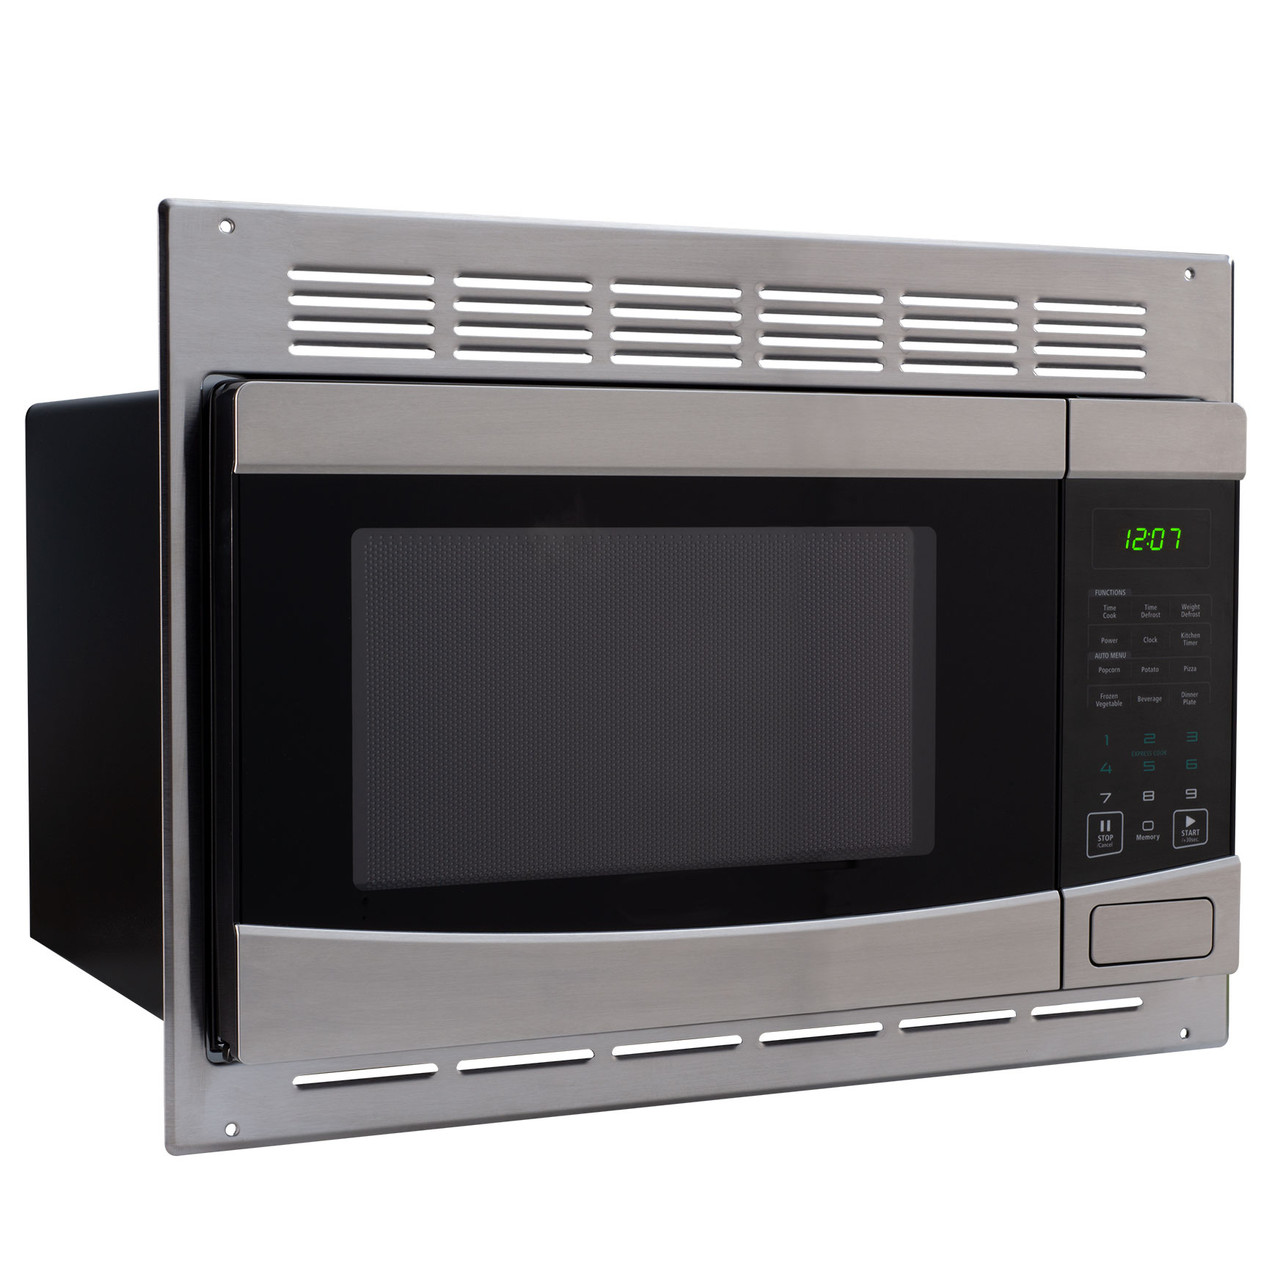 RV Microwave Stainless Steel 1.0 cu. ft. Replaces High Pointe and Greystone